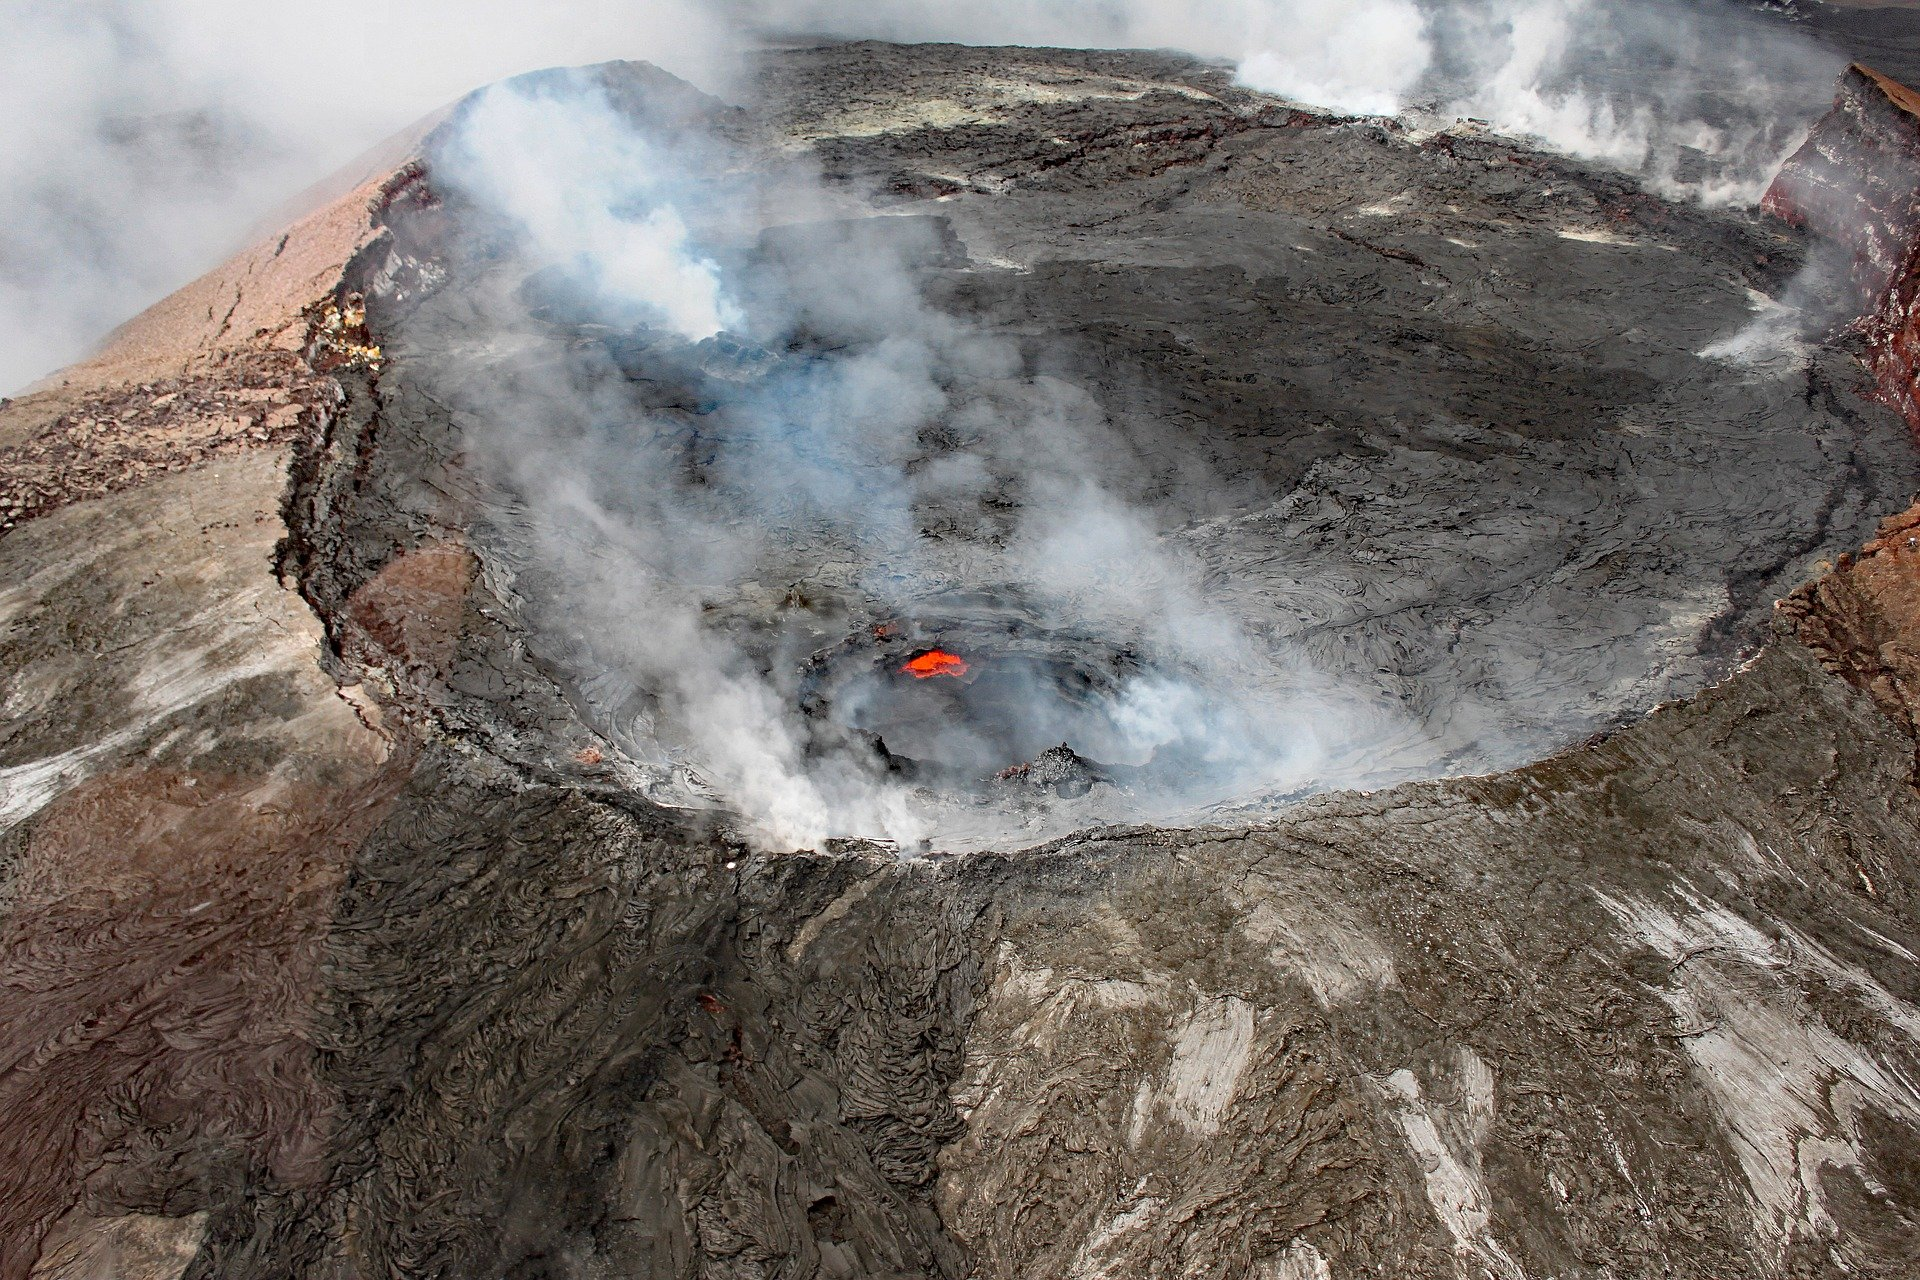 South American volcano showing early warning signs of 'potential collapse,' research shows